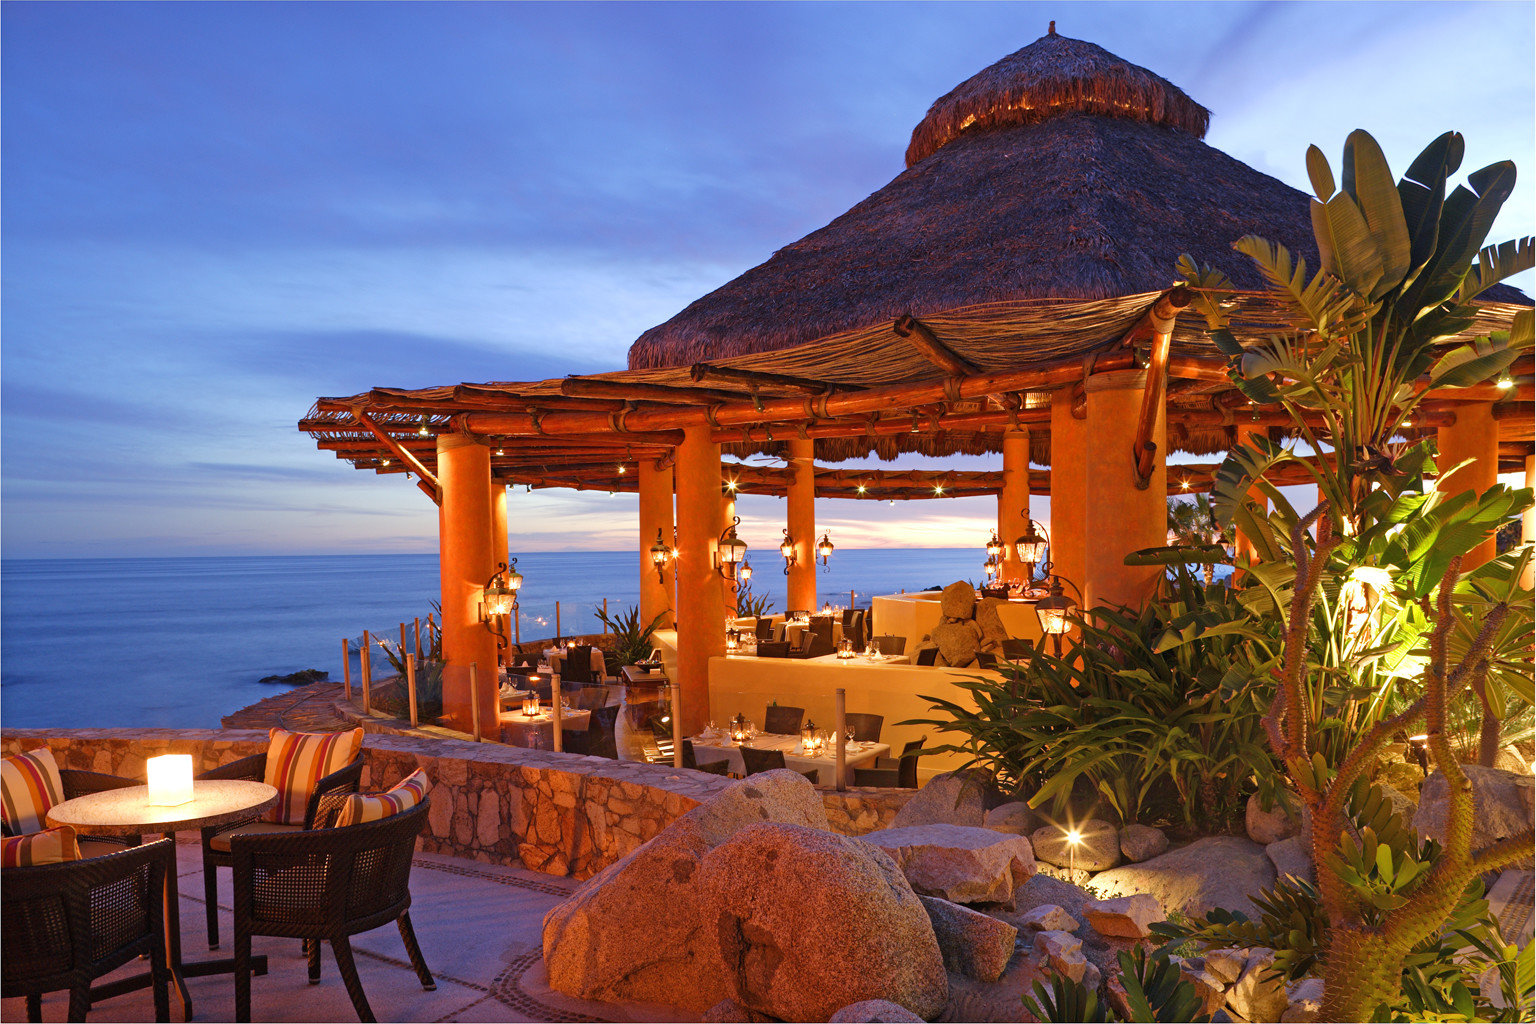 Dining Drink Eat Honeymoon Luxury Romance Romantic Scenic views Tropical Waterfront sky chair Resort Beach Villa set overlooking shade